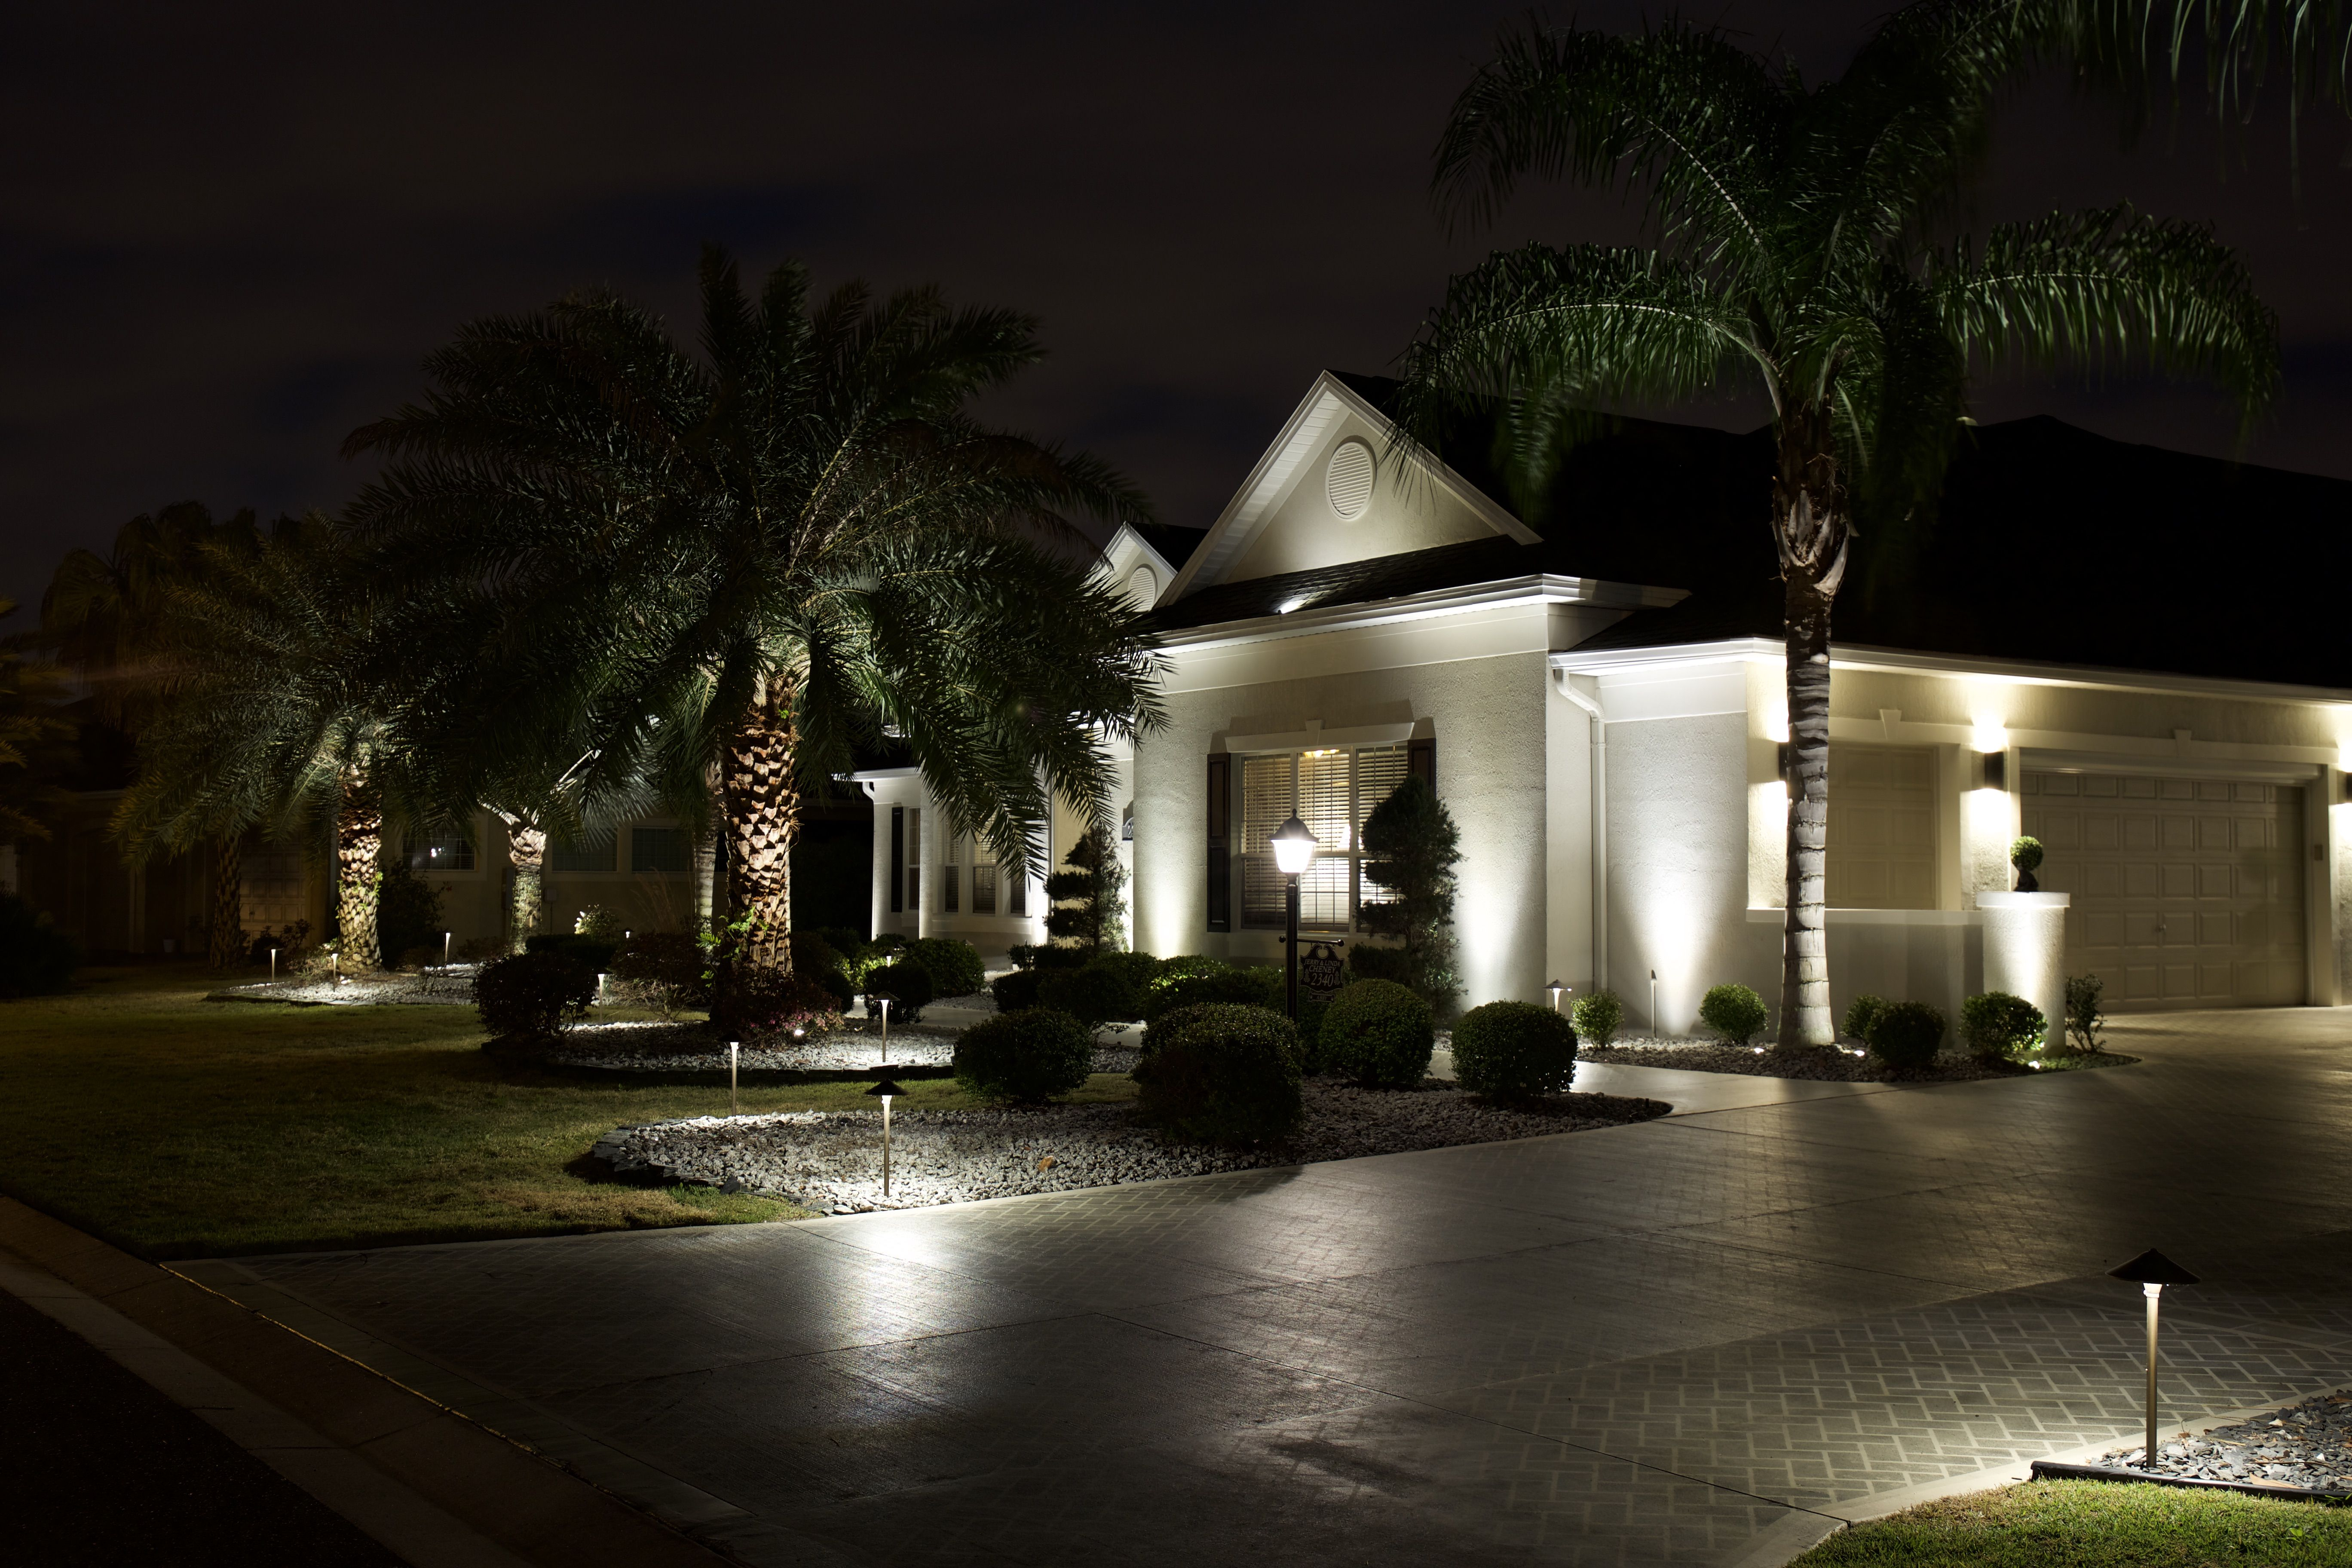 Beautifully lit home courtesy of volts landscape lighting house beautifully lit home courtesy of volts landscape lighting mozeypictures Gallery